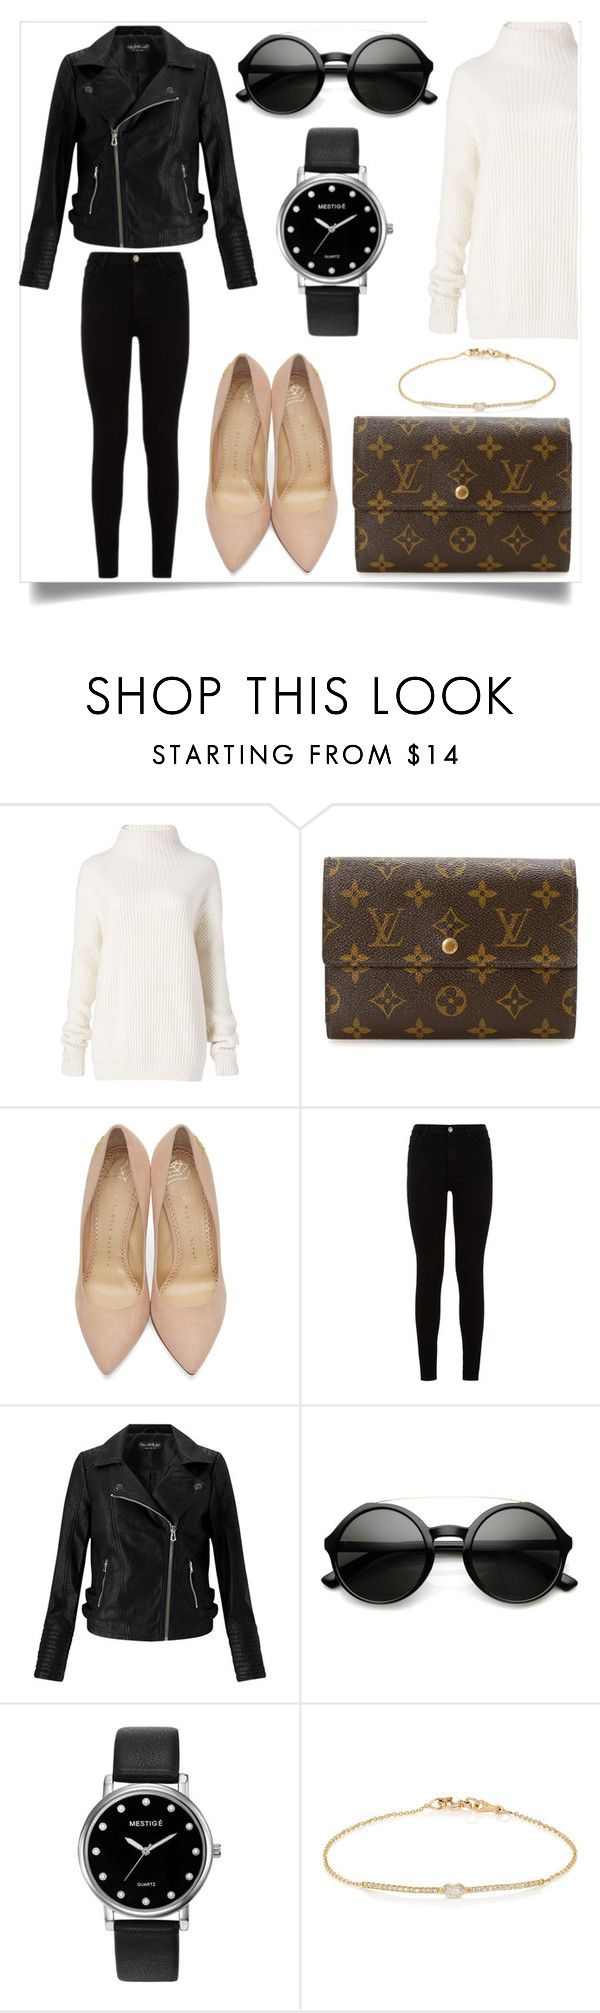 """""""Untitled #240"""" by voicu-ana ❤ liked on Polyvore featuring Diane Von Furstenberg, Louis Vuitton, Charlotte Olympia, 7 For All Mankind, Miss Selfridge, ZeroUV, Mestige and Tate"""